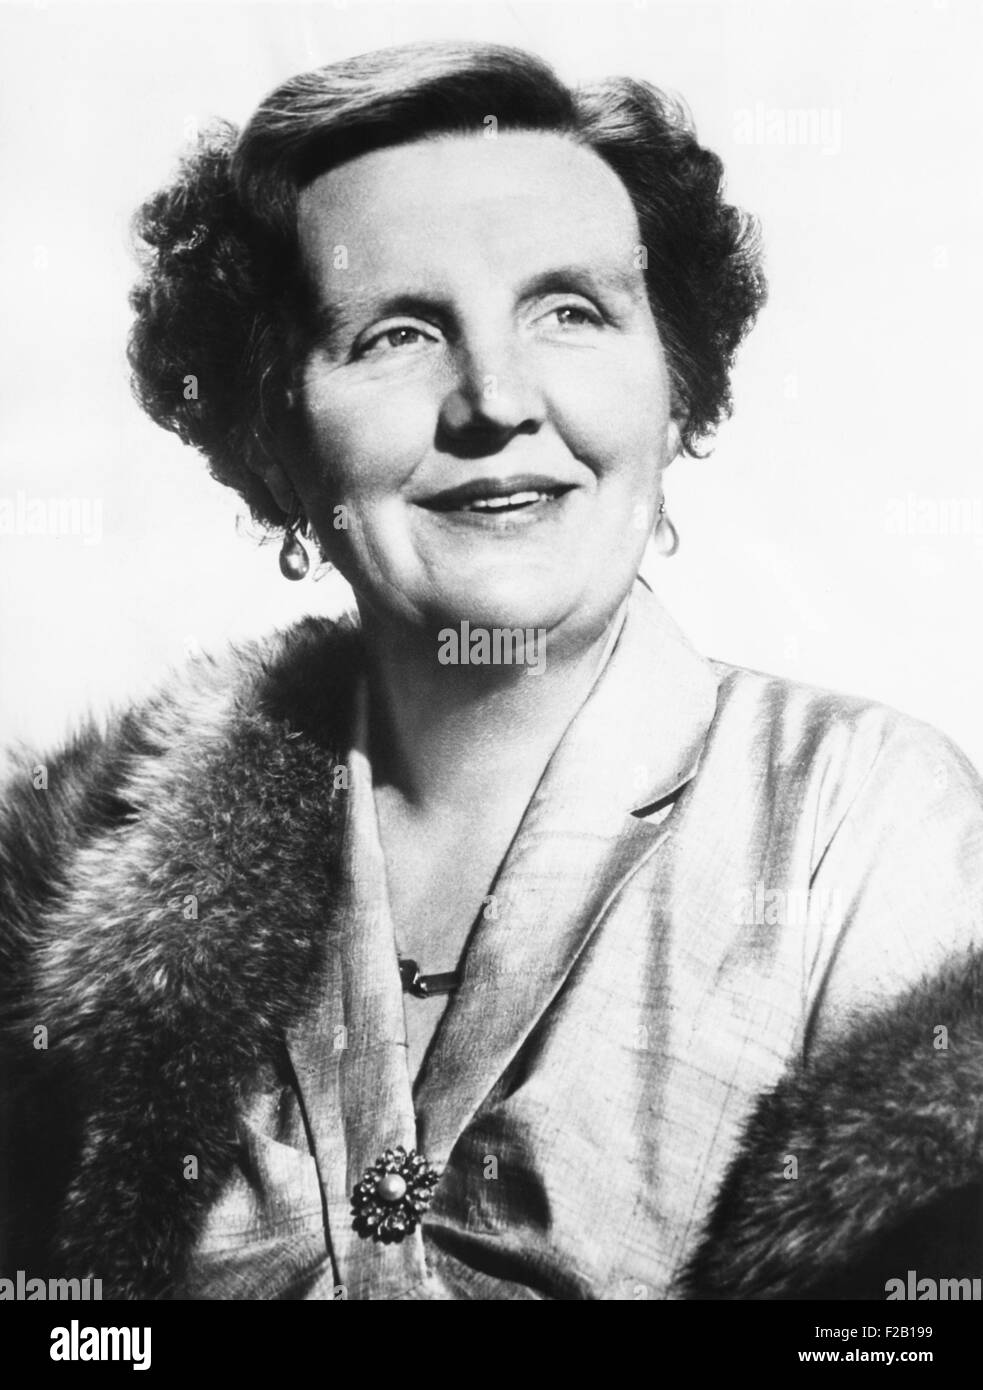 46th birthday portrait of Queen Juliana of the Netherlands. April 1955. (CSU_2015_8_644) - Stock Image